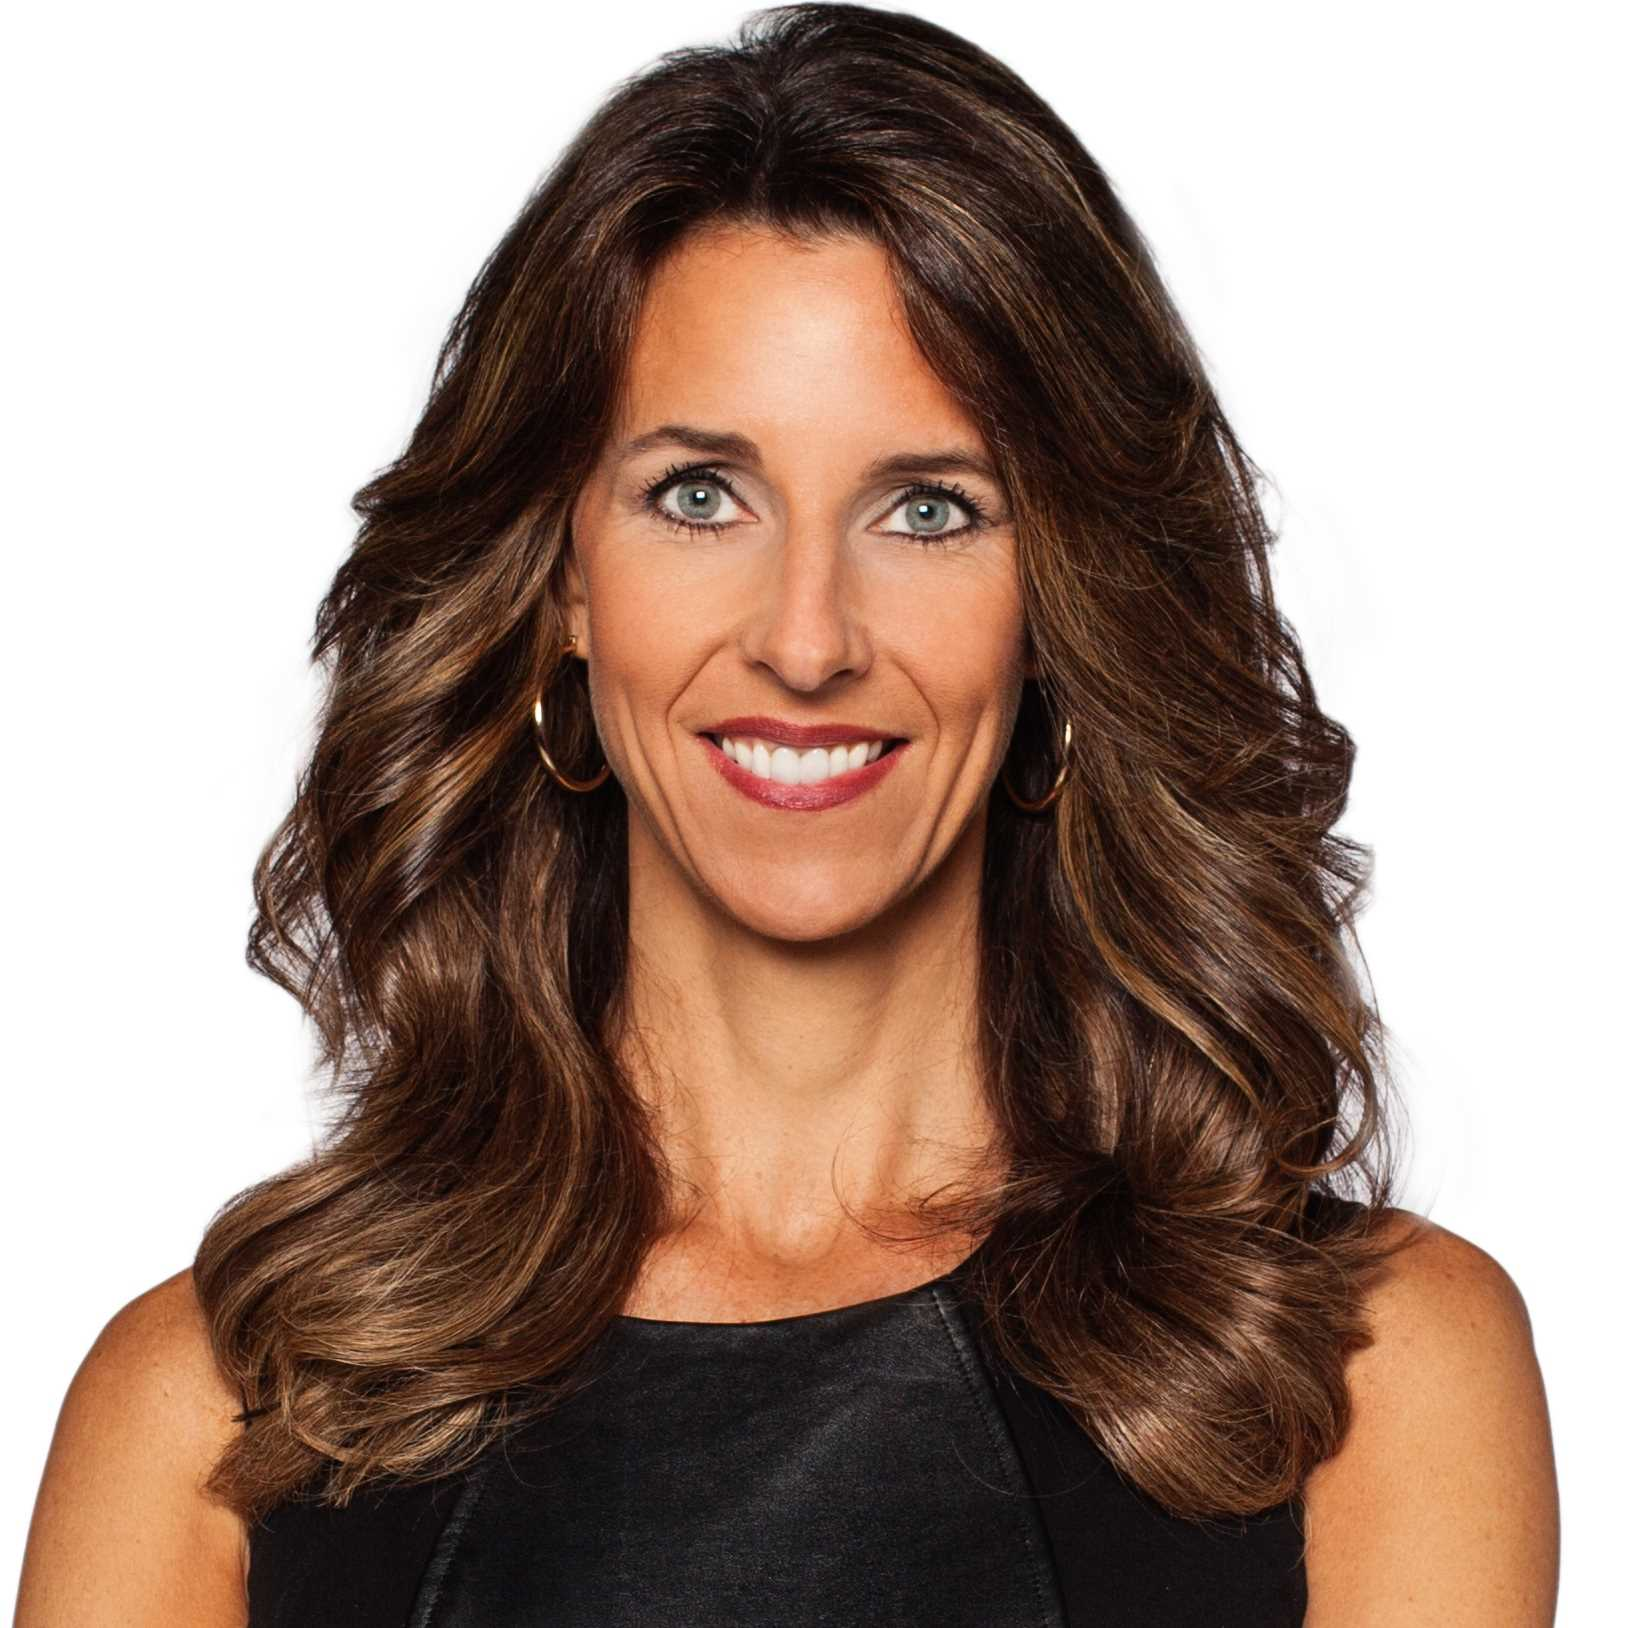 Carey Lohrenz, Female Motivational Speaker